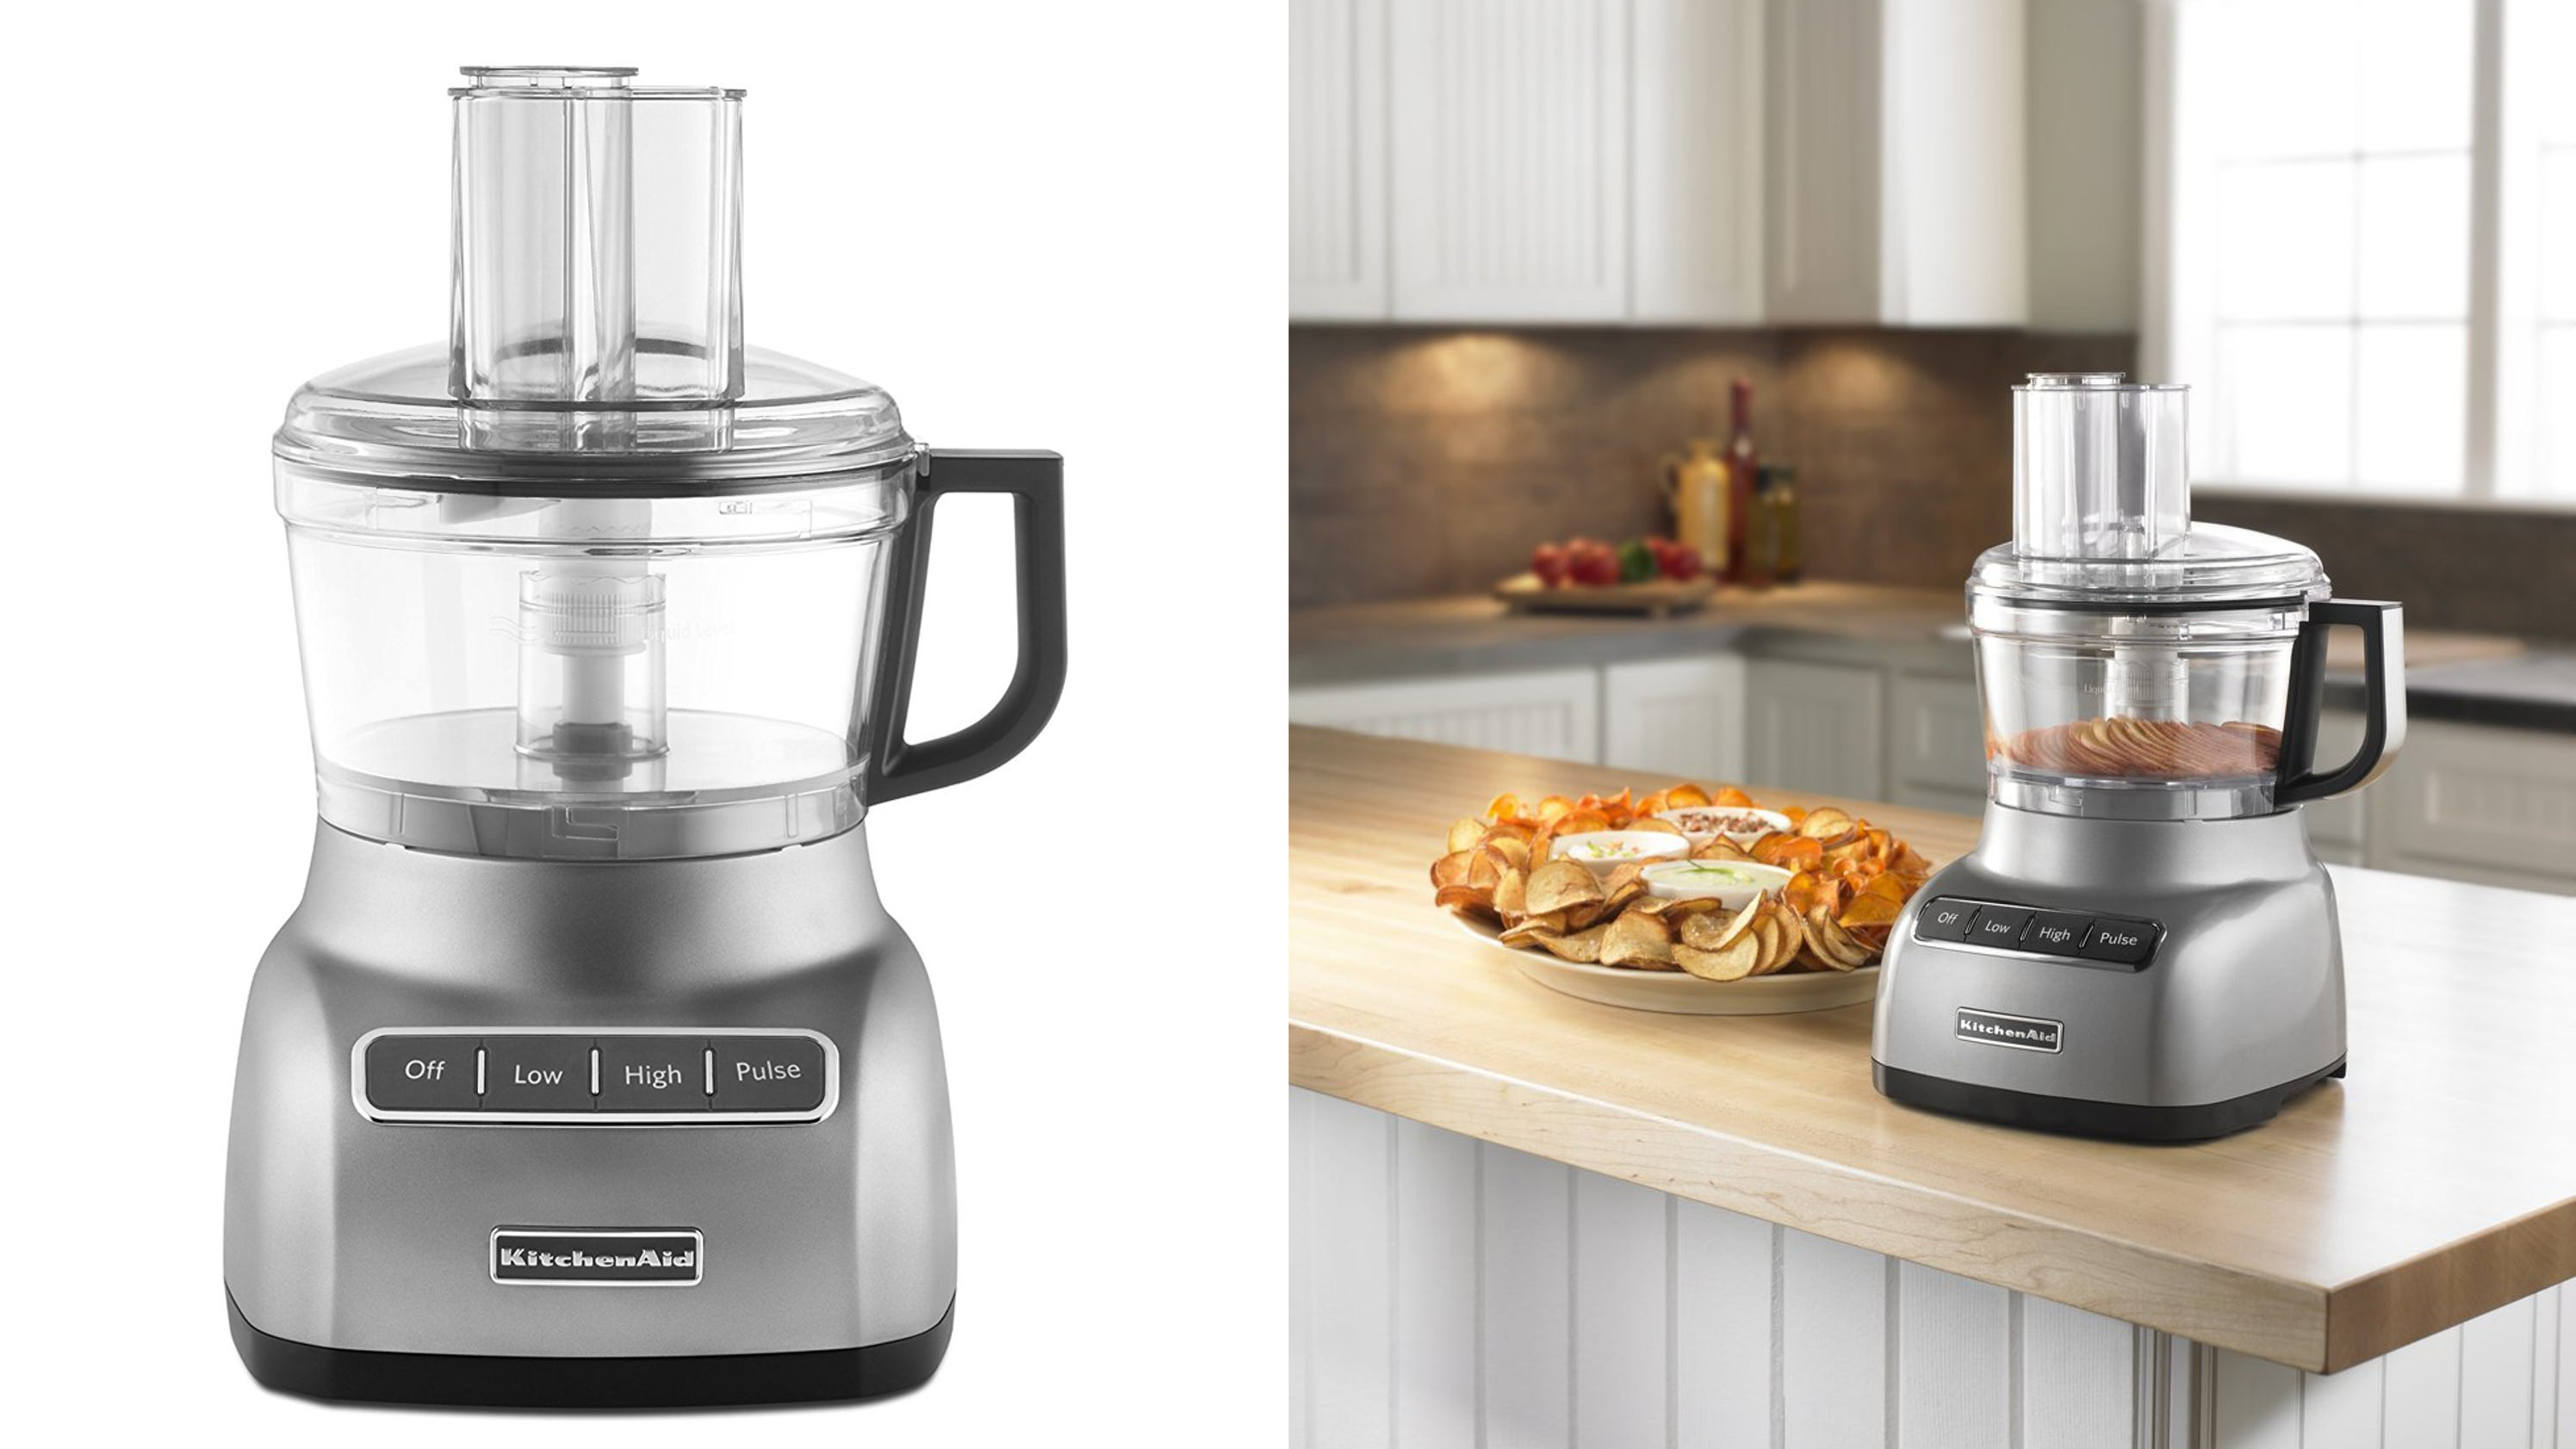 with graphite amazon food cup com kitchenaid aid kitchen system dp exactslice processor dining liquid